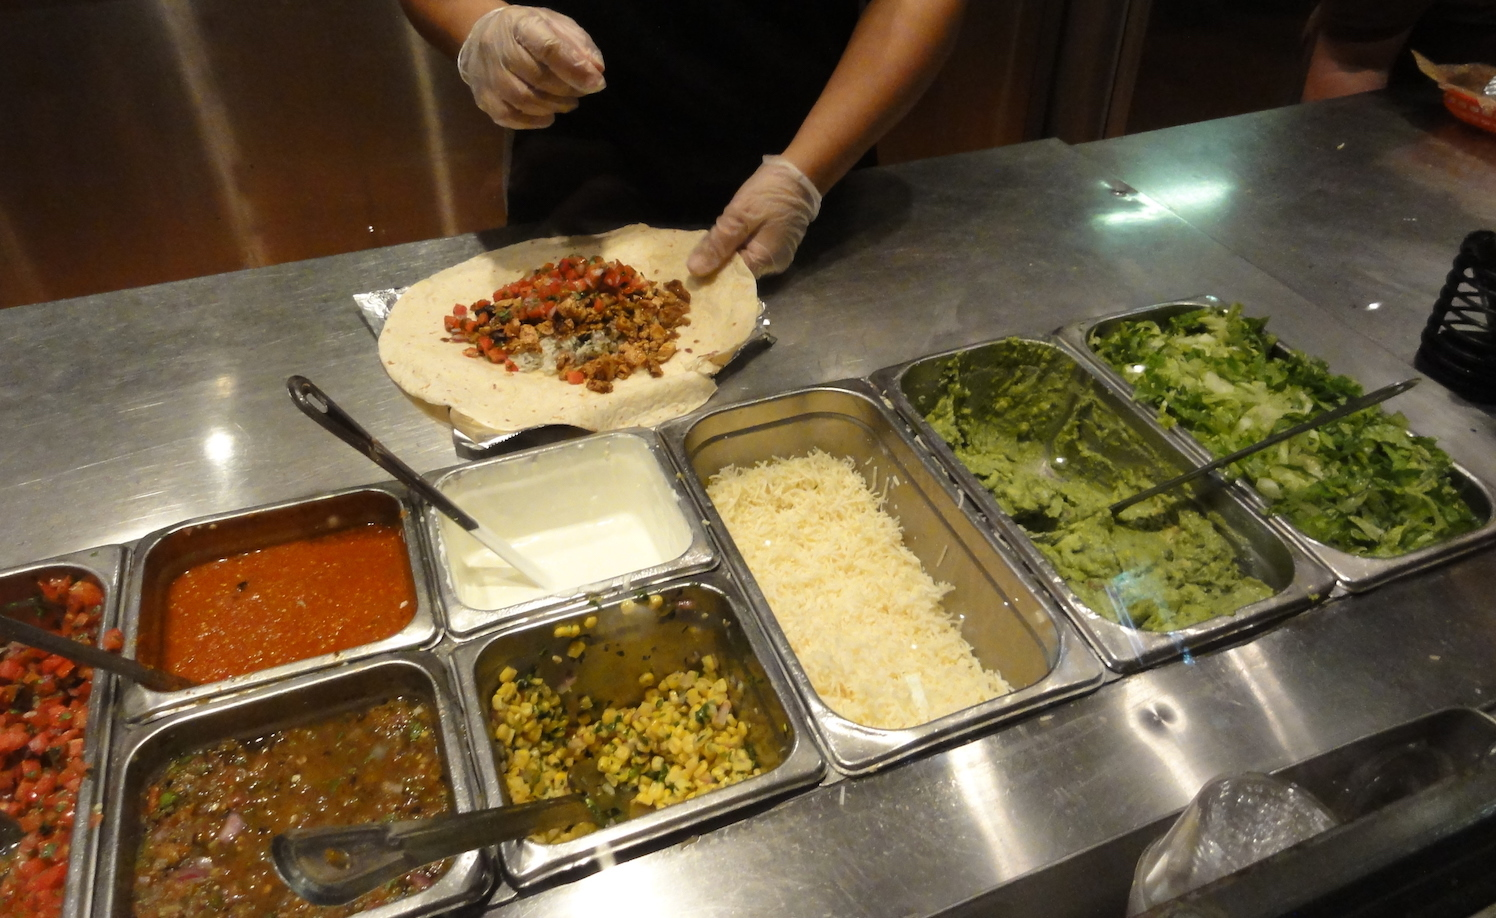 Burrito assembly at Chipotle